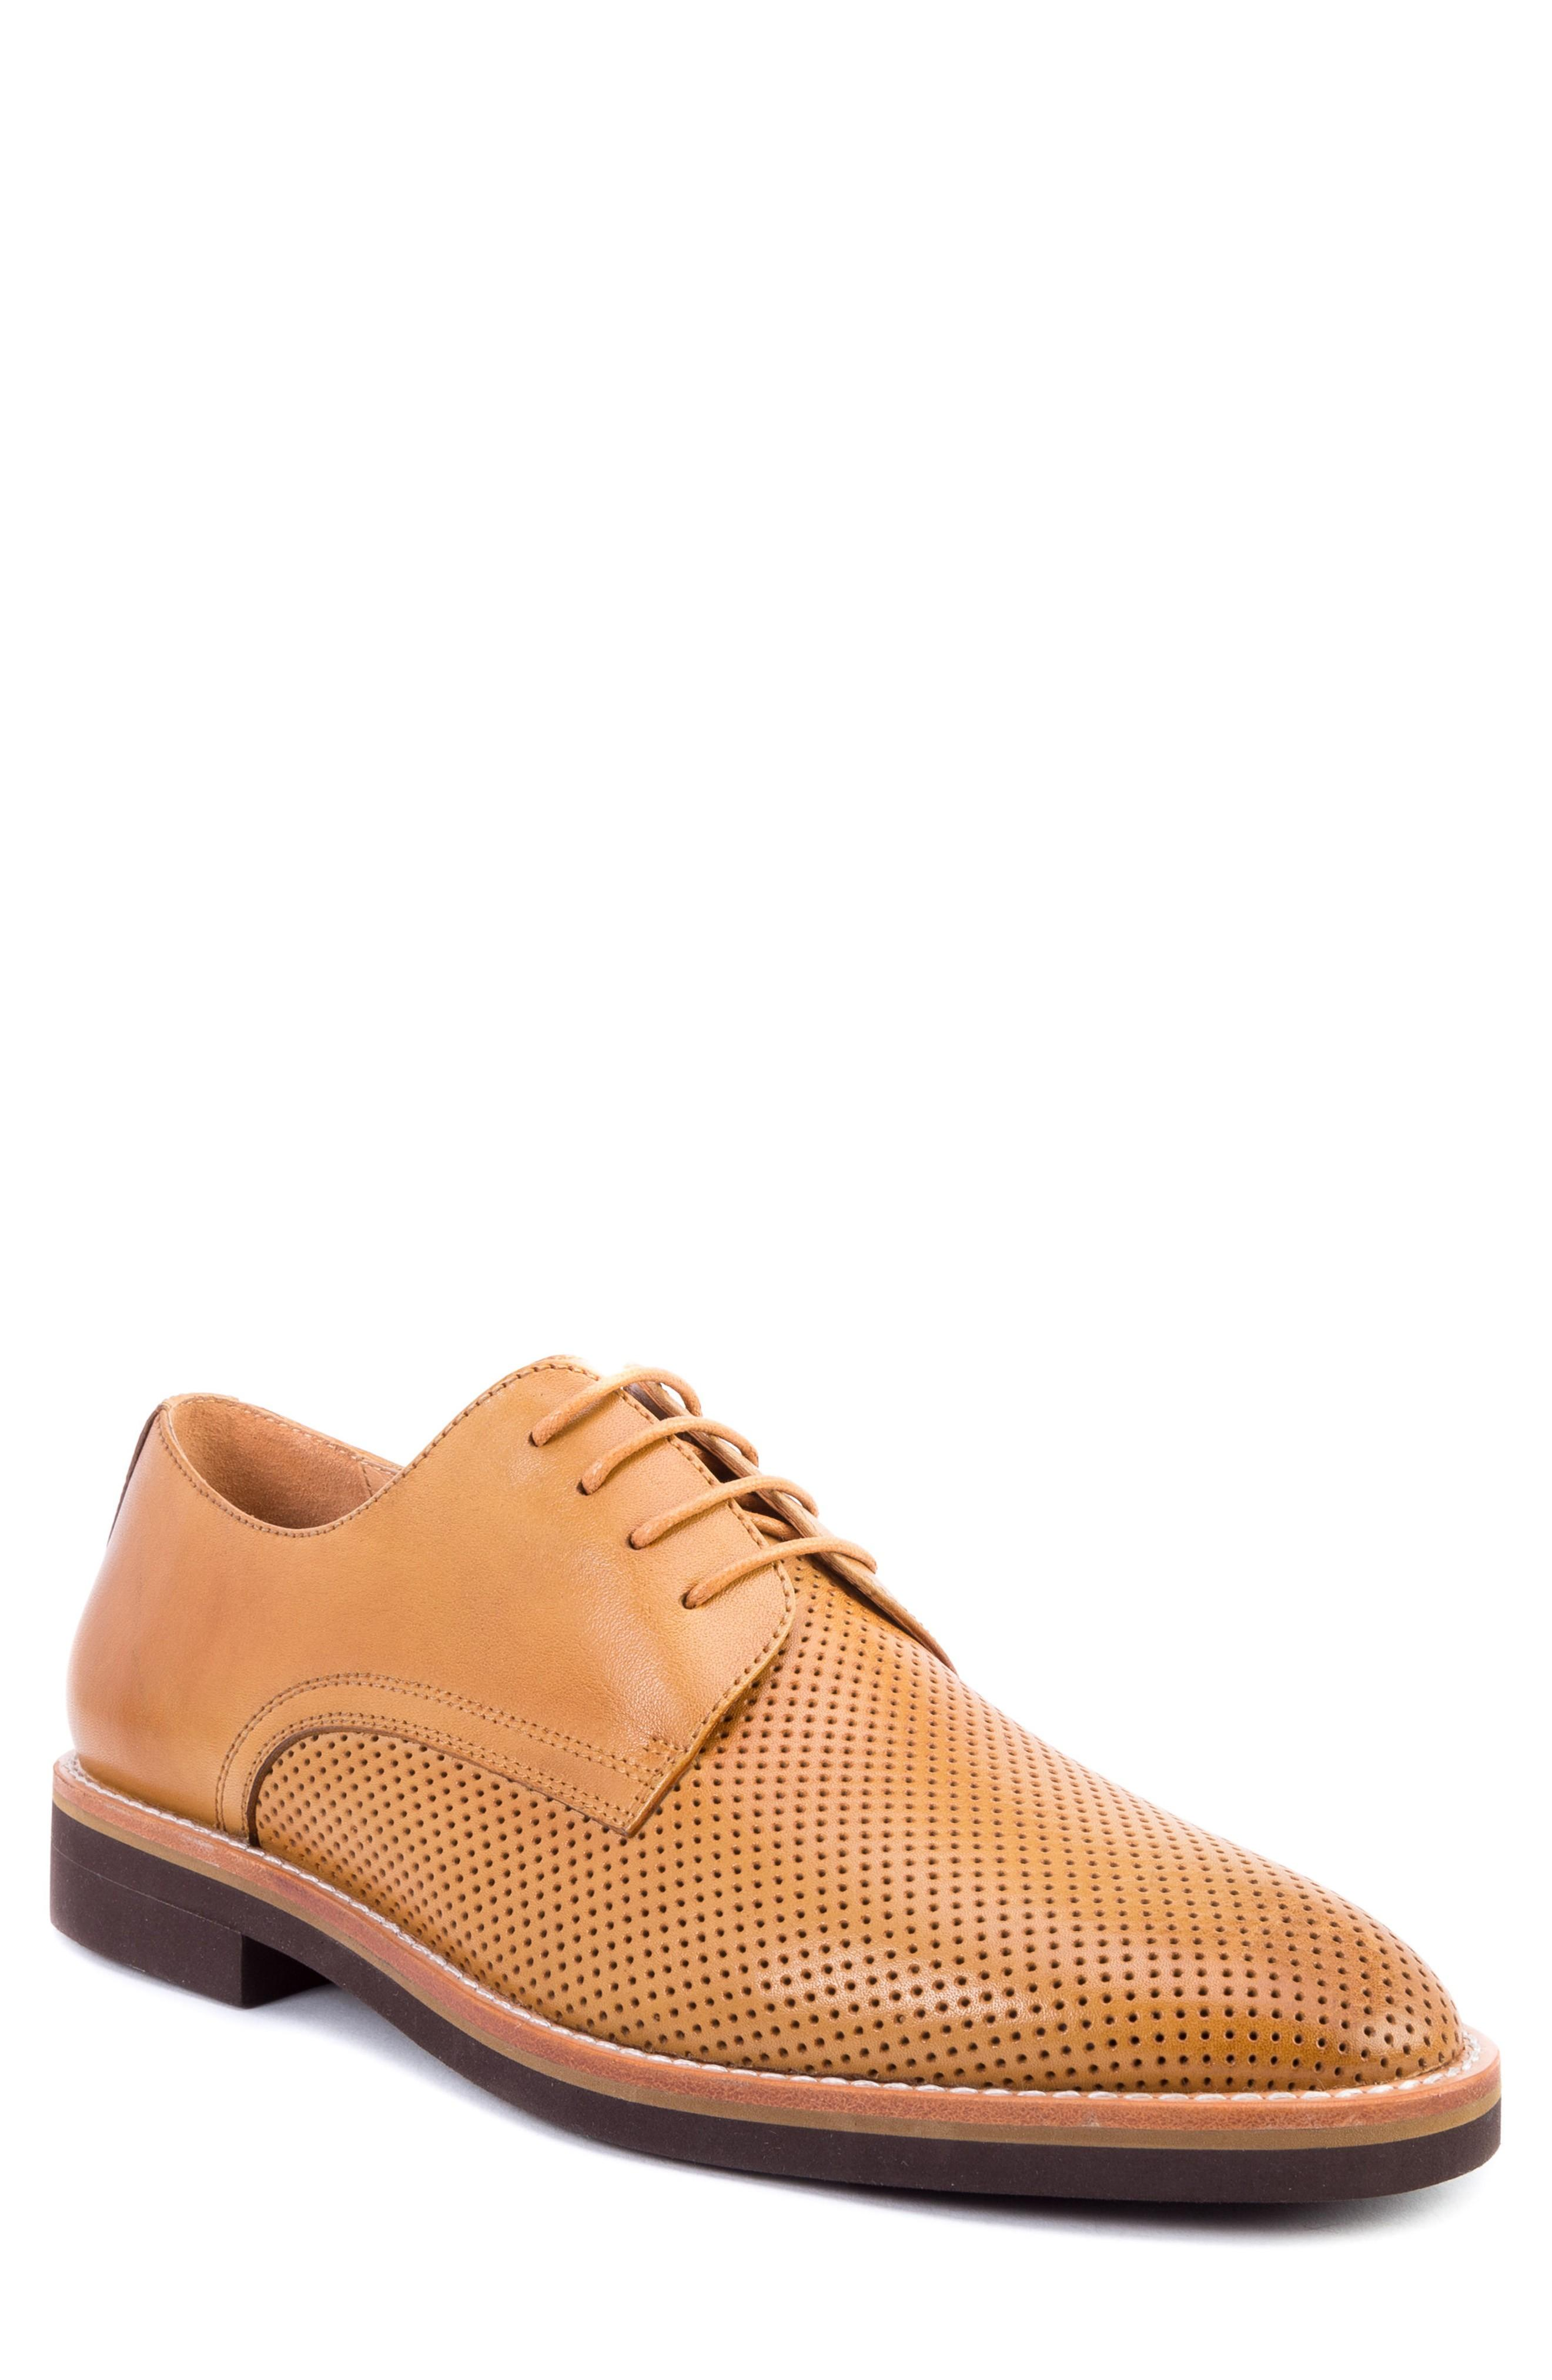 Zanzara Hartung Perforated Plain Toe Derby In Cognac Leather